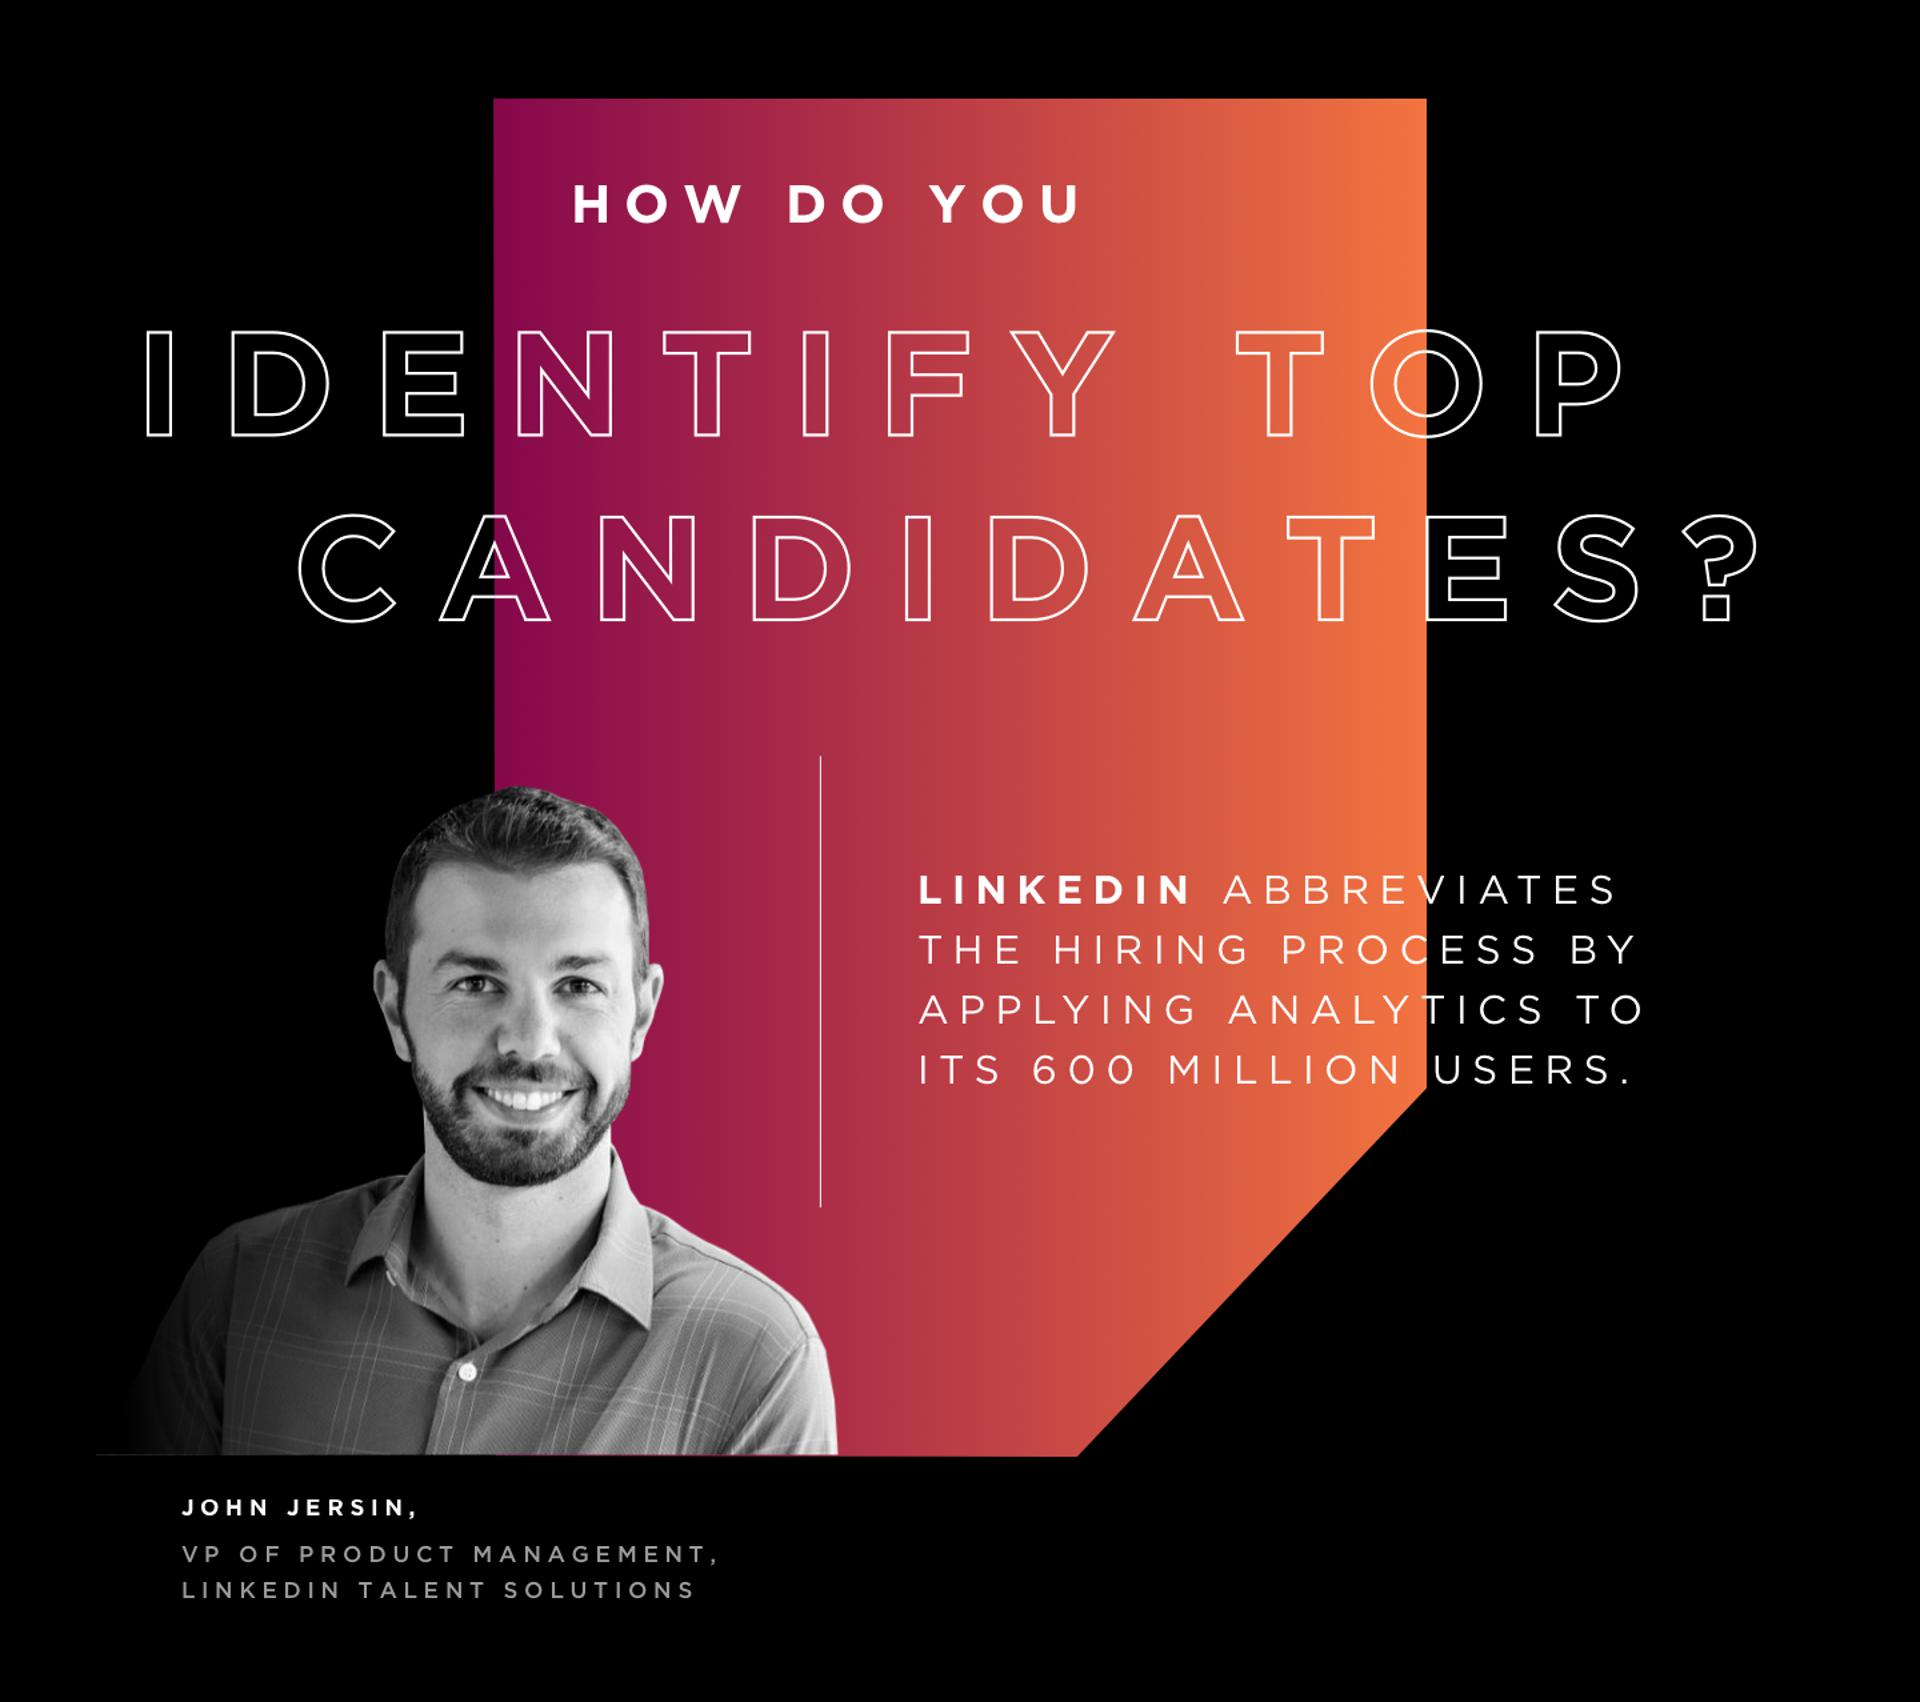 2. How Do You Identify Top Candidates? LinkedIn abbreviates the hiring process by applying analytics to its 600 million users.